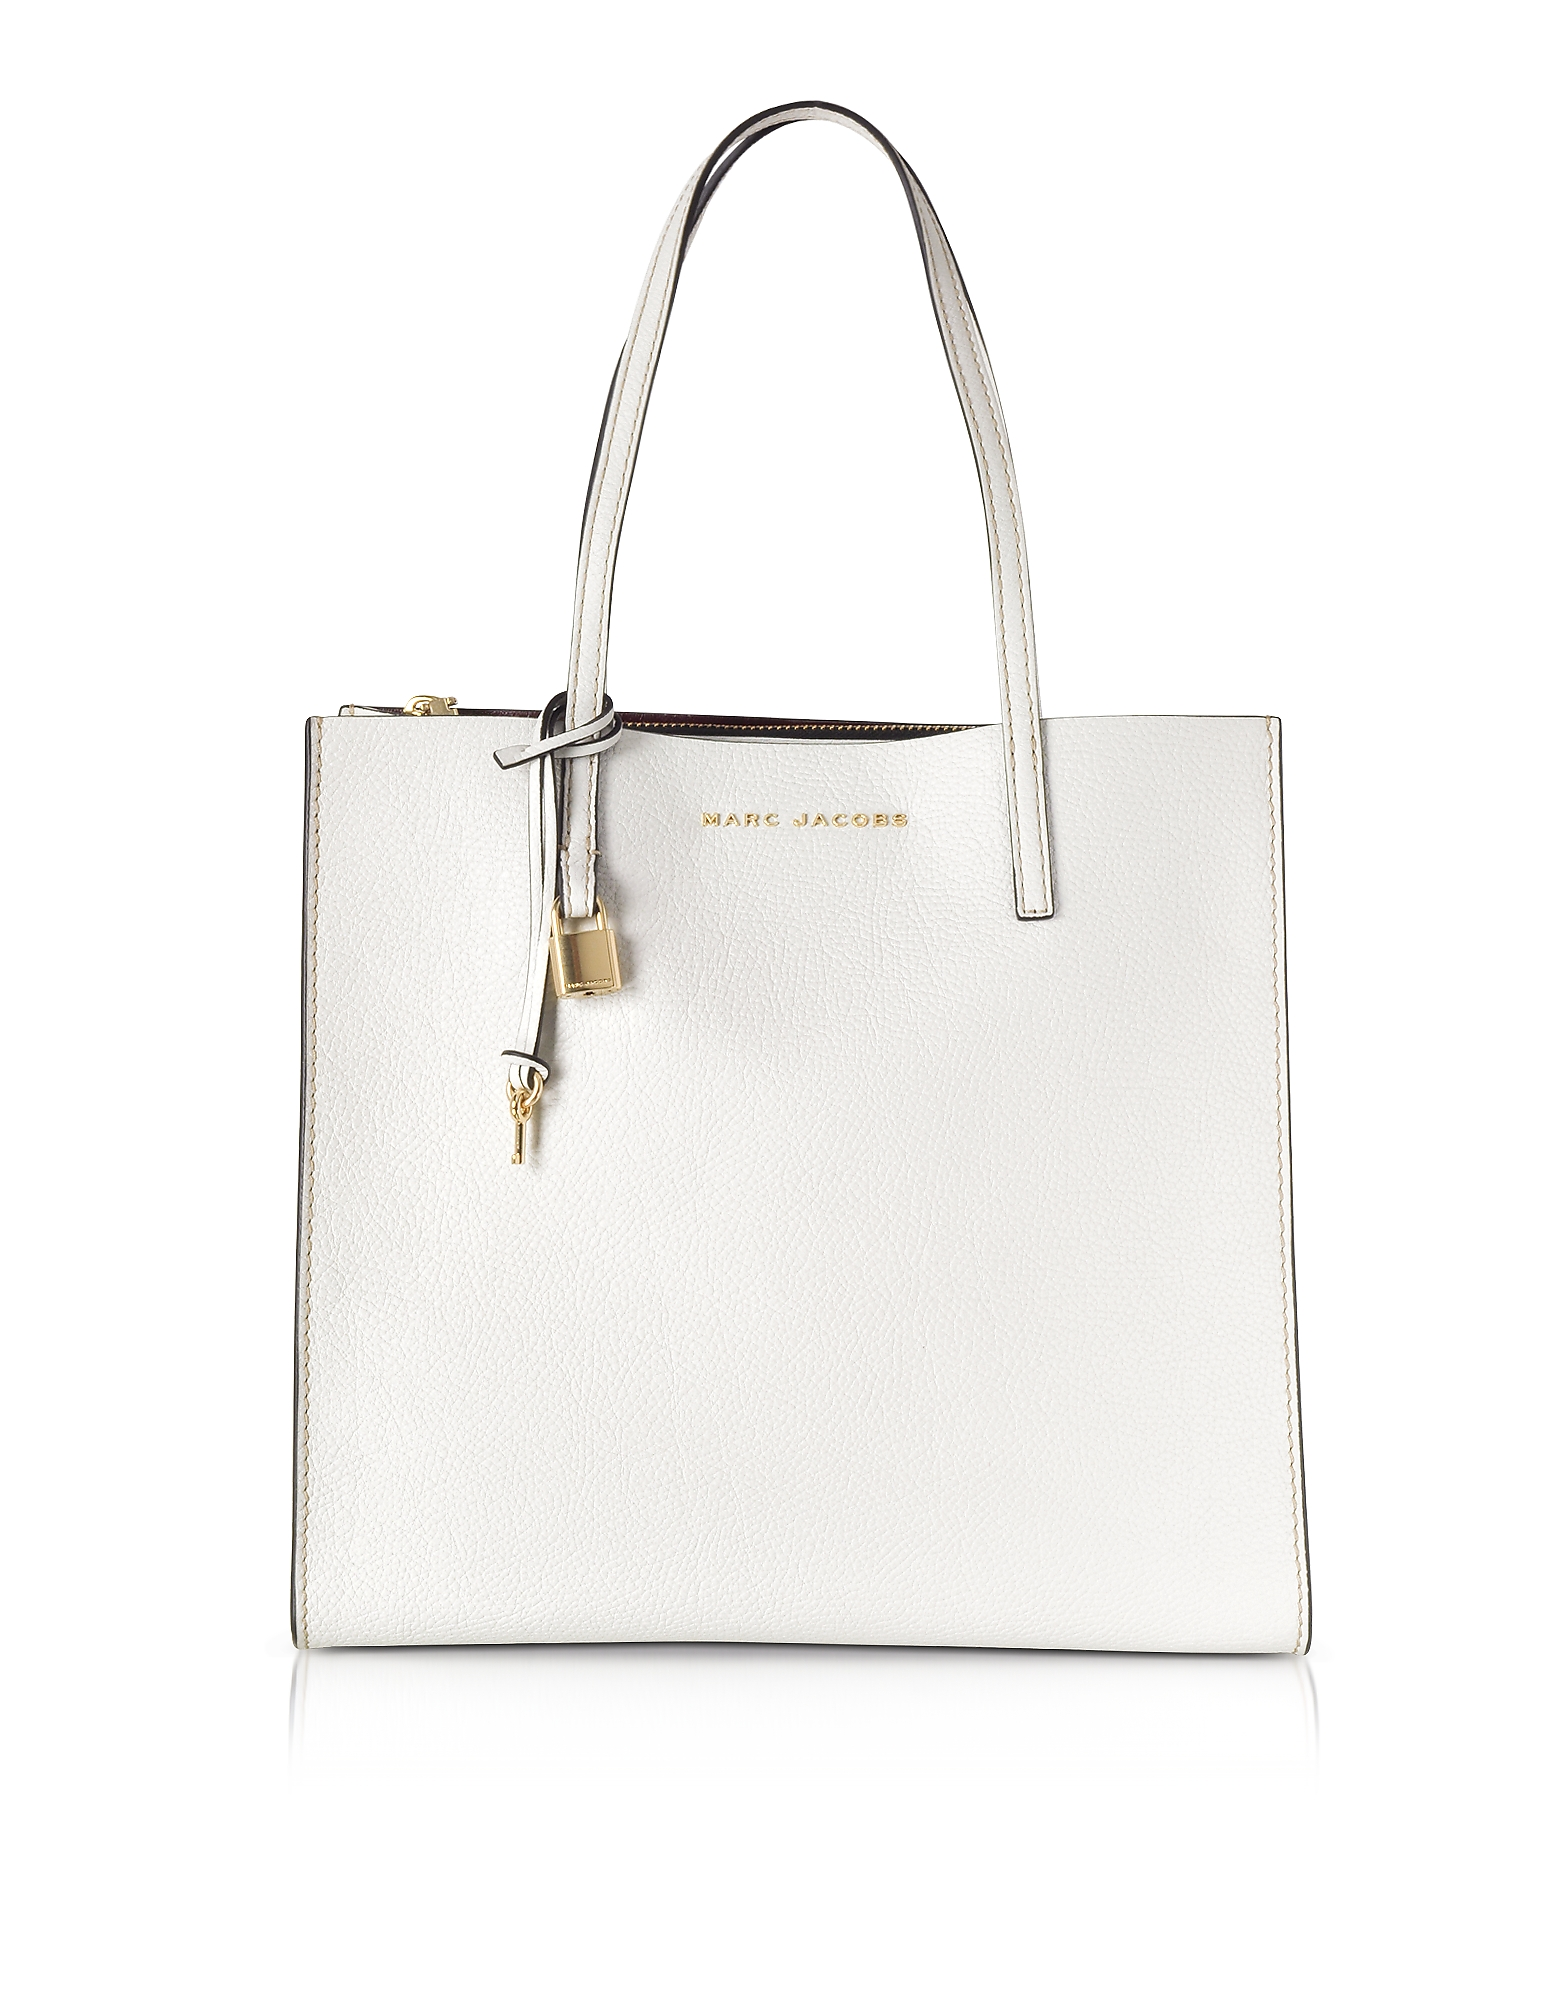 Marc Jacobs Handbags, White Glow Leather The Grind Tote Bag